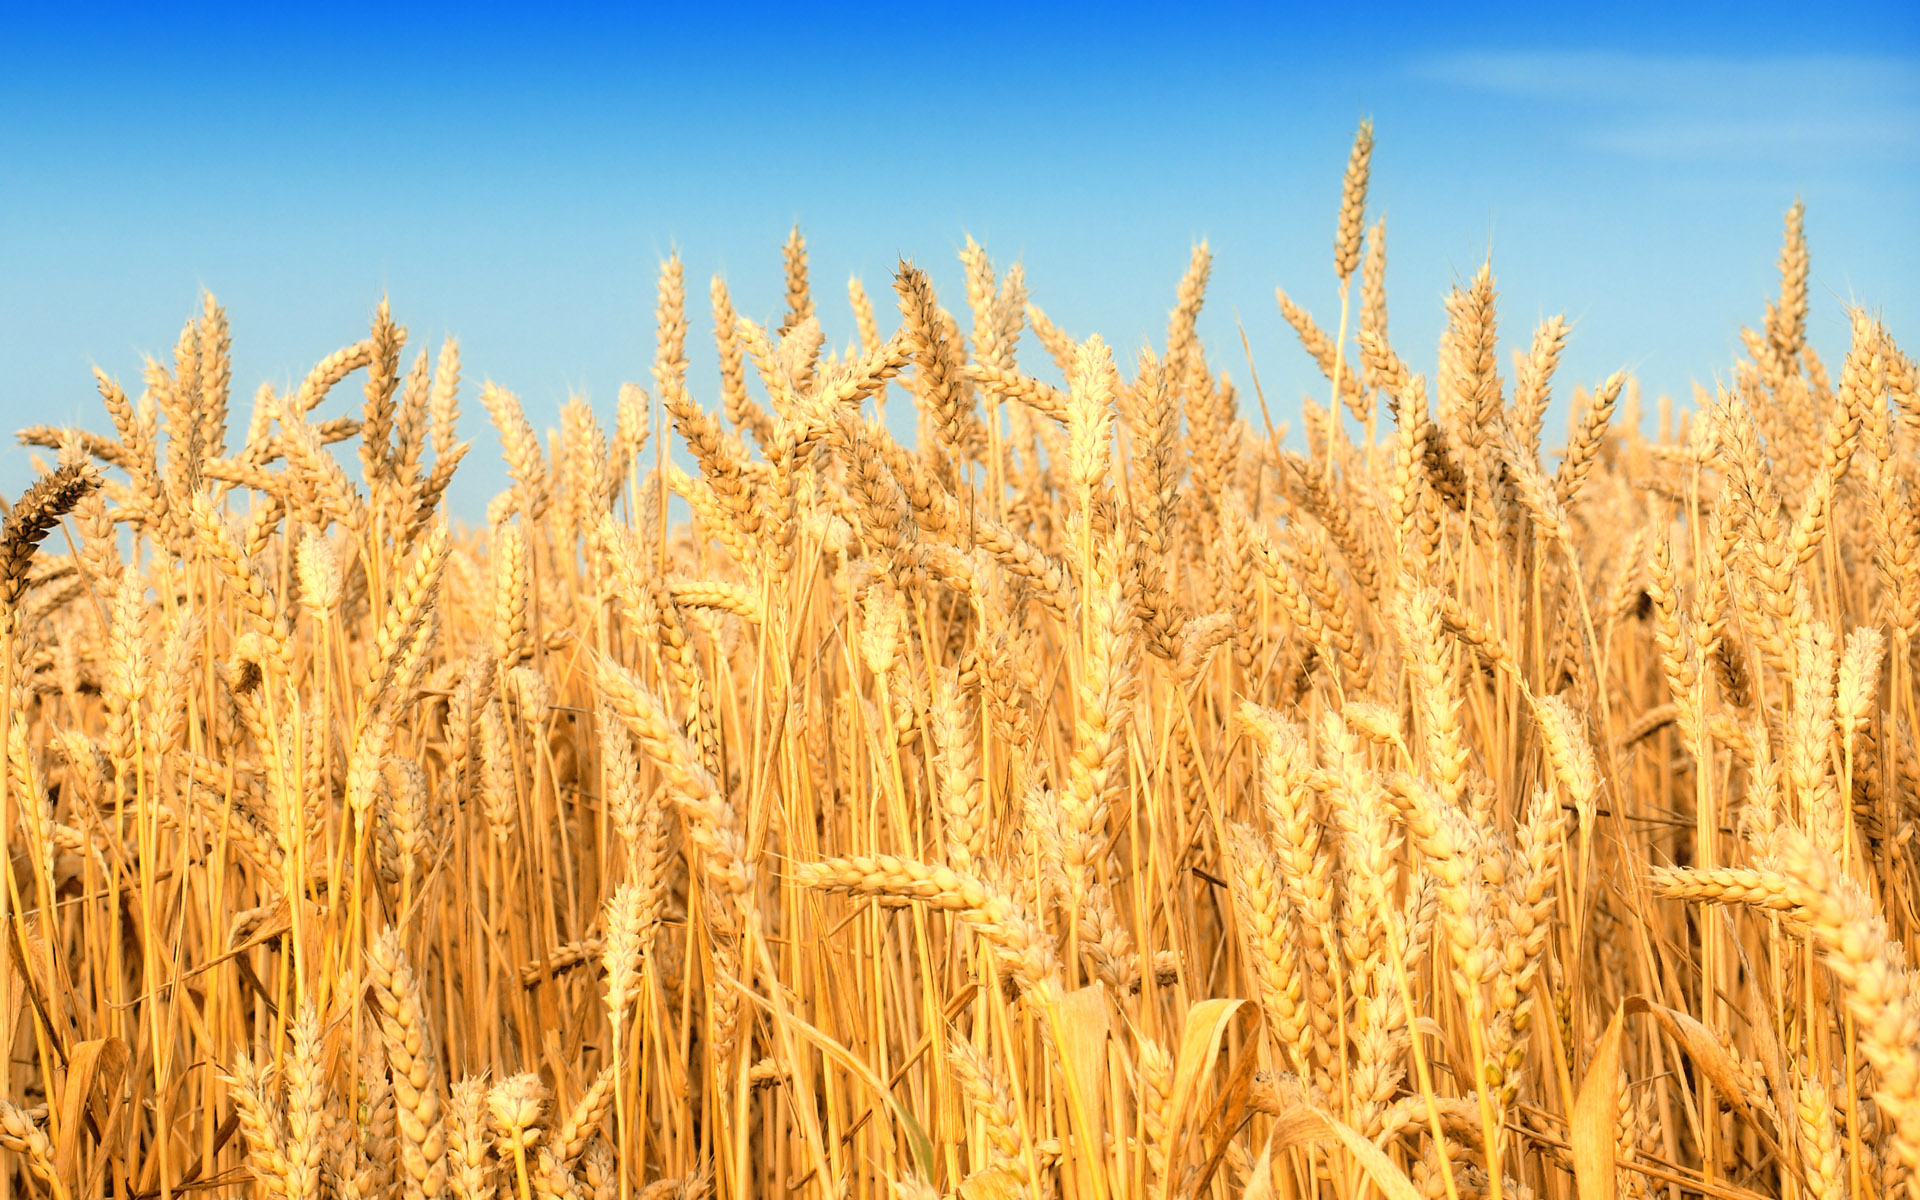 HD wheat crop material 9367